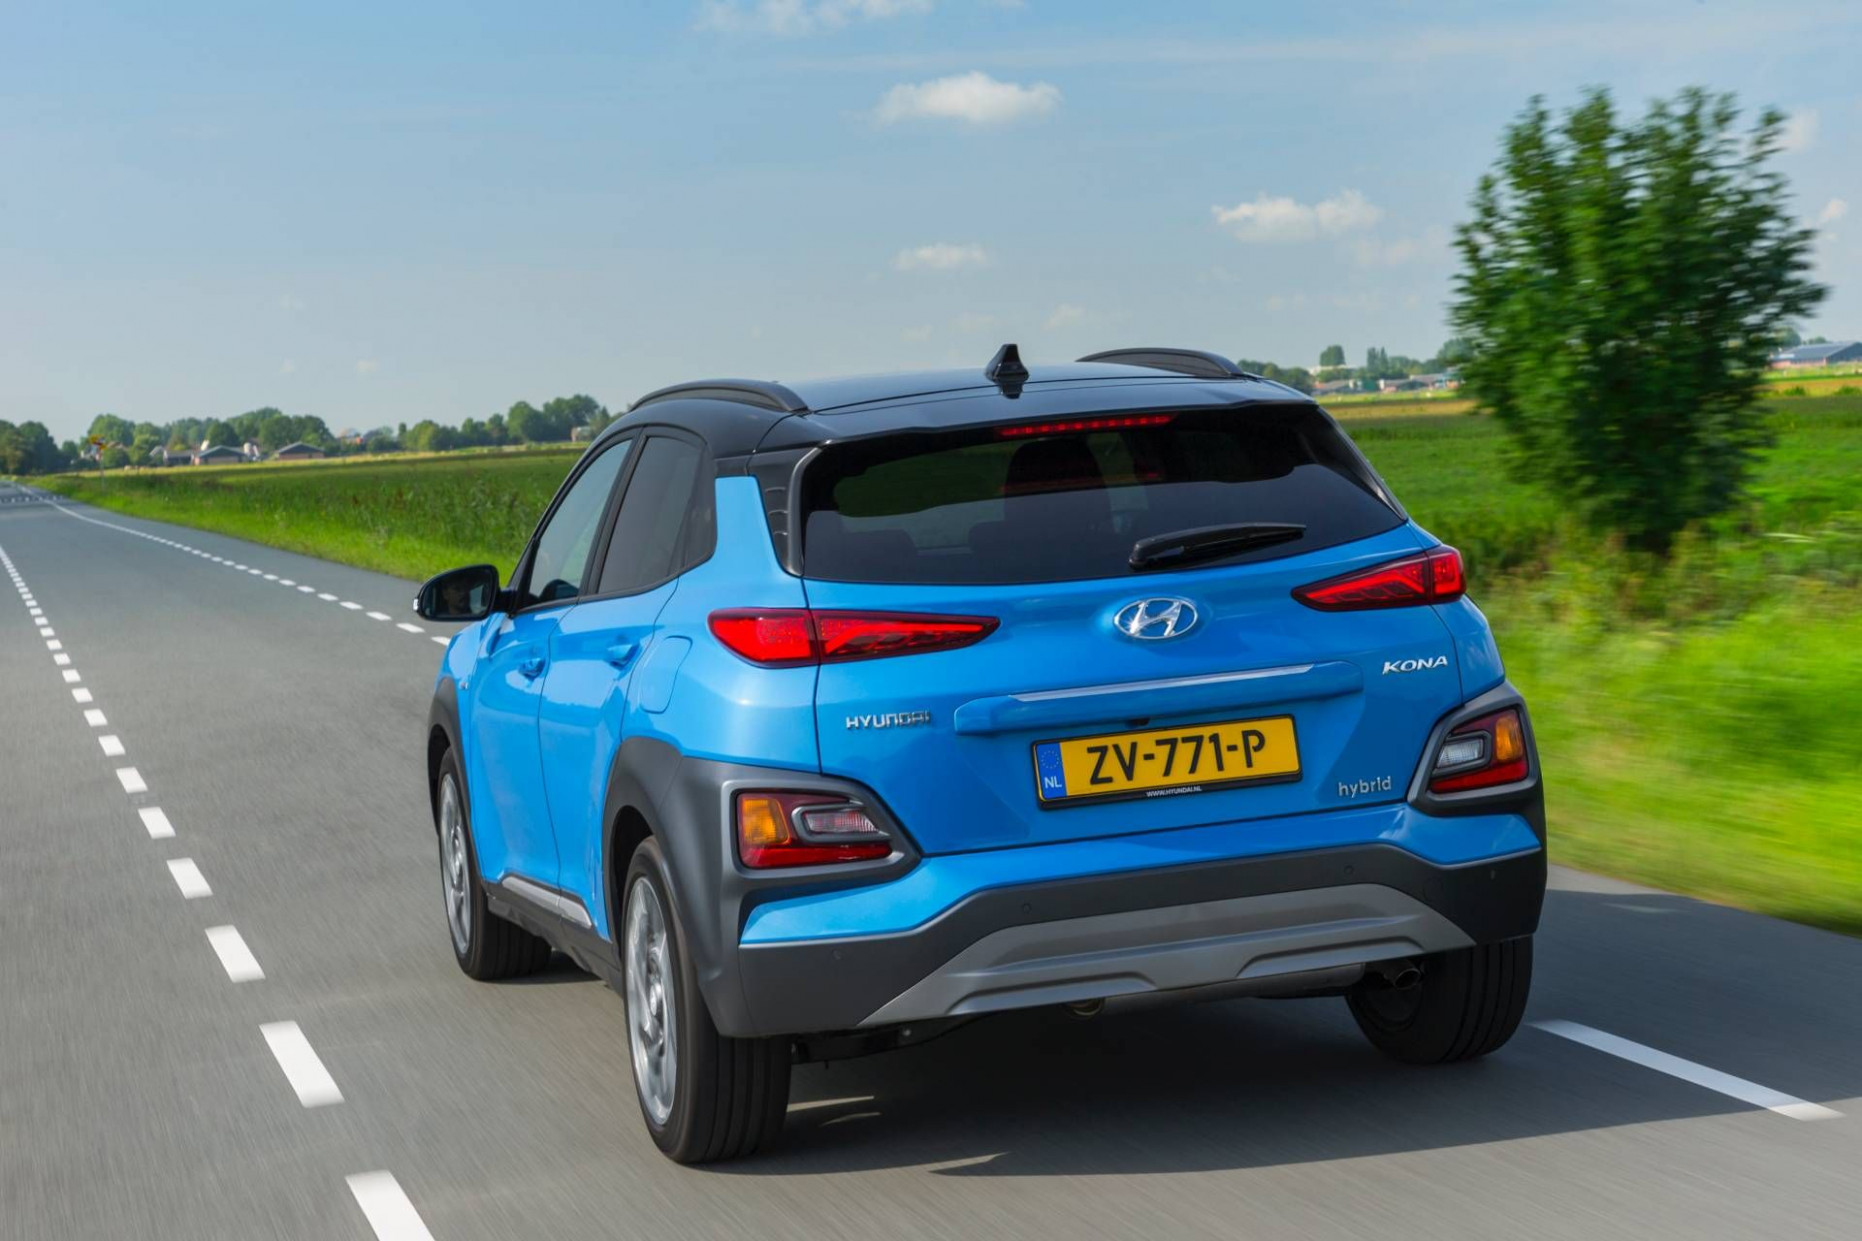 hyundai offers june 11 Price 11*11 - hyundai offers june 11 ...